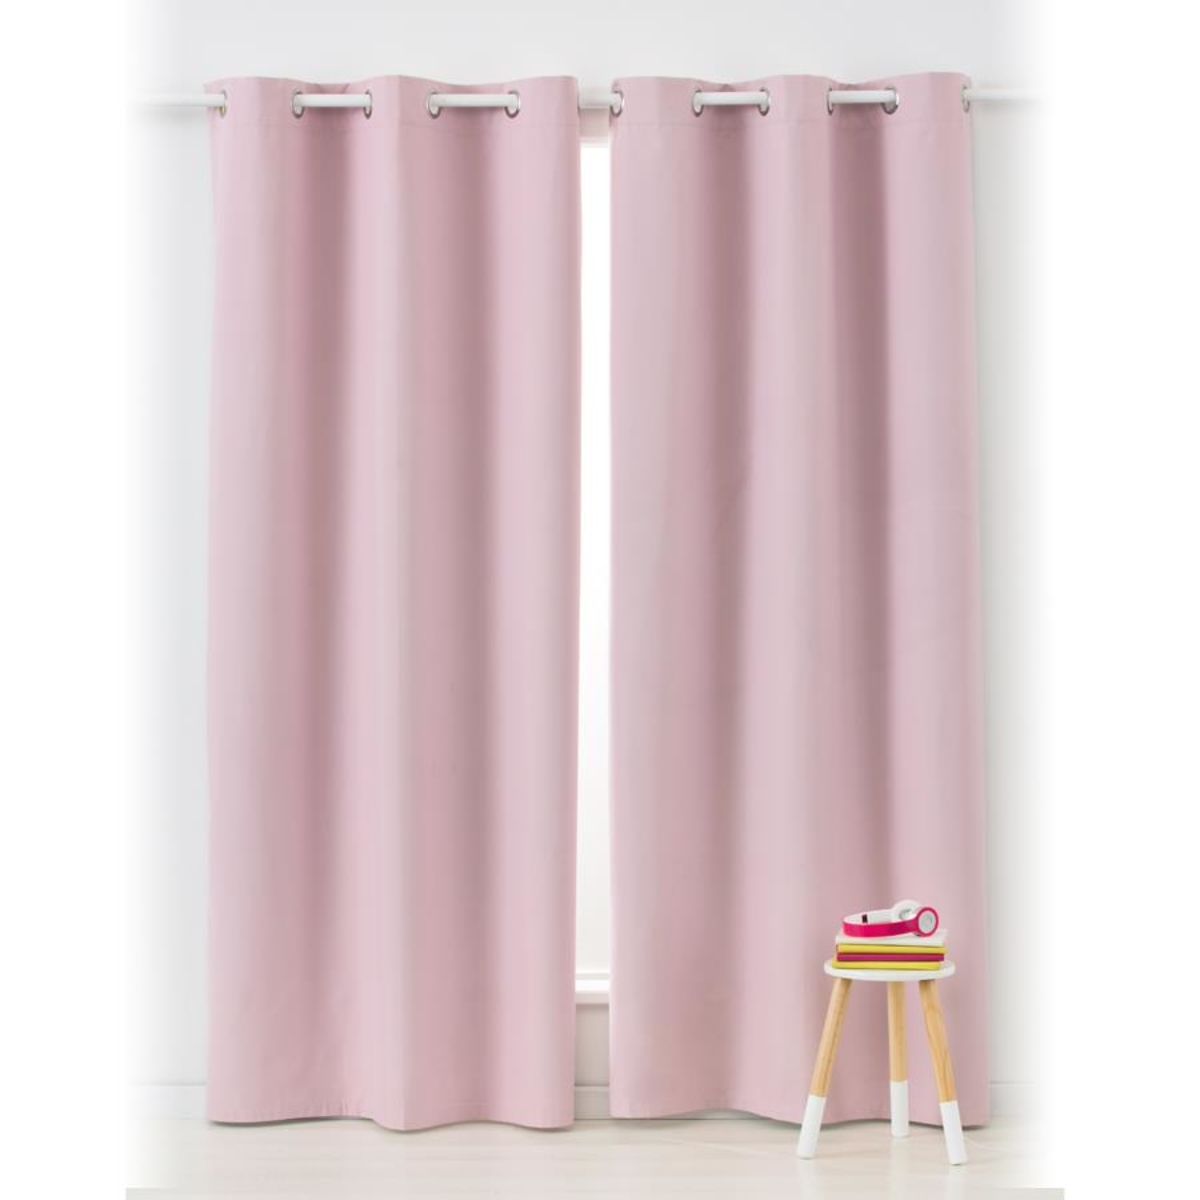 ideas curtains dusty shower curtain rose floral inspration wondrous sheer spring